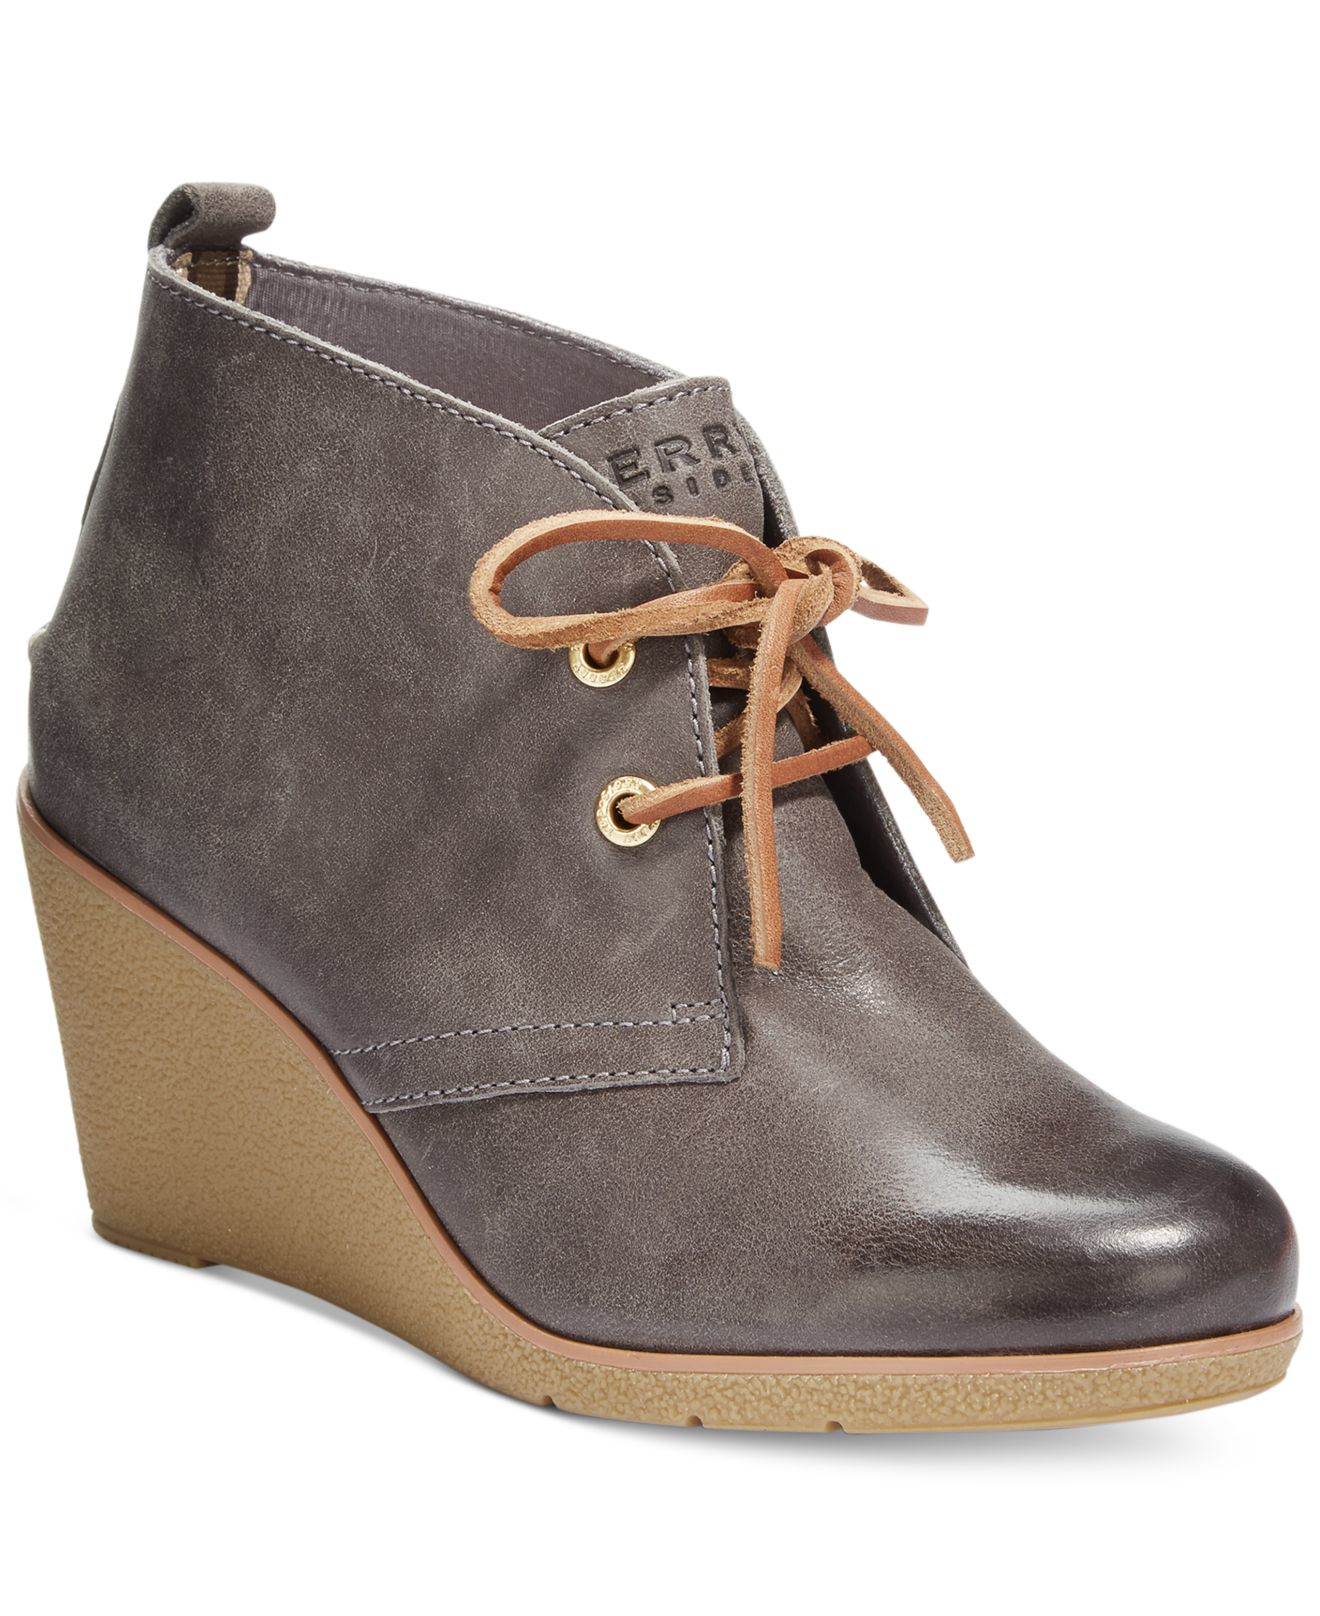 Womens Grey Wedge Shoes